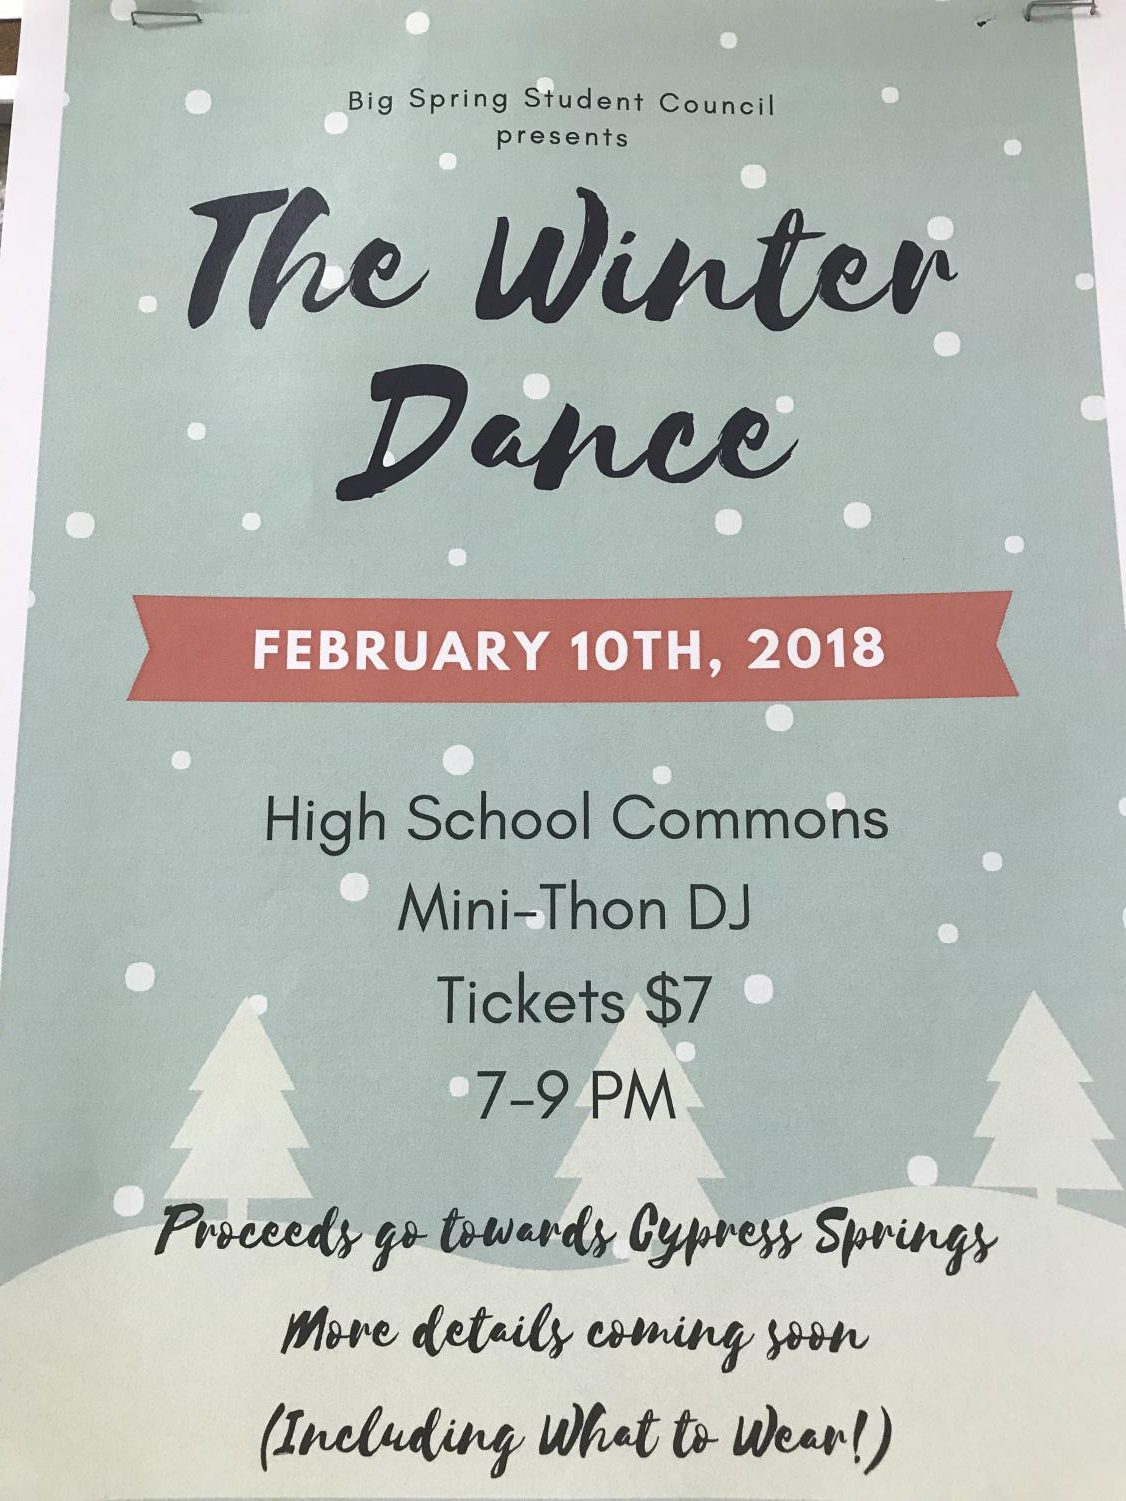 Details for Winter Dance, where it is taking place, when, time, and reasoning for the dance